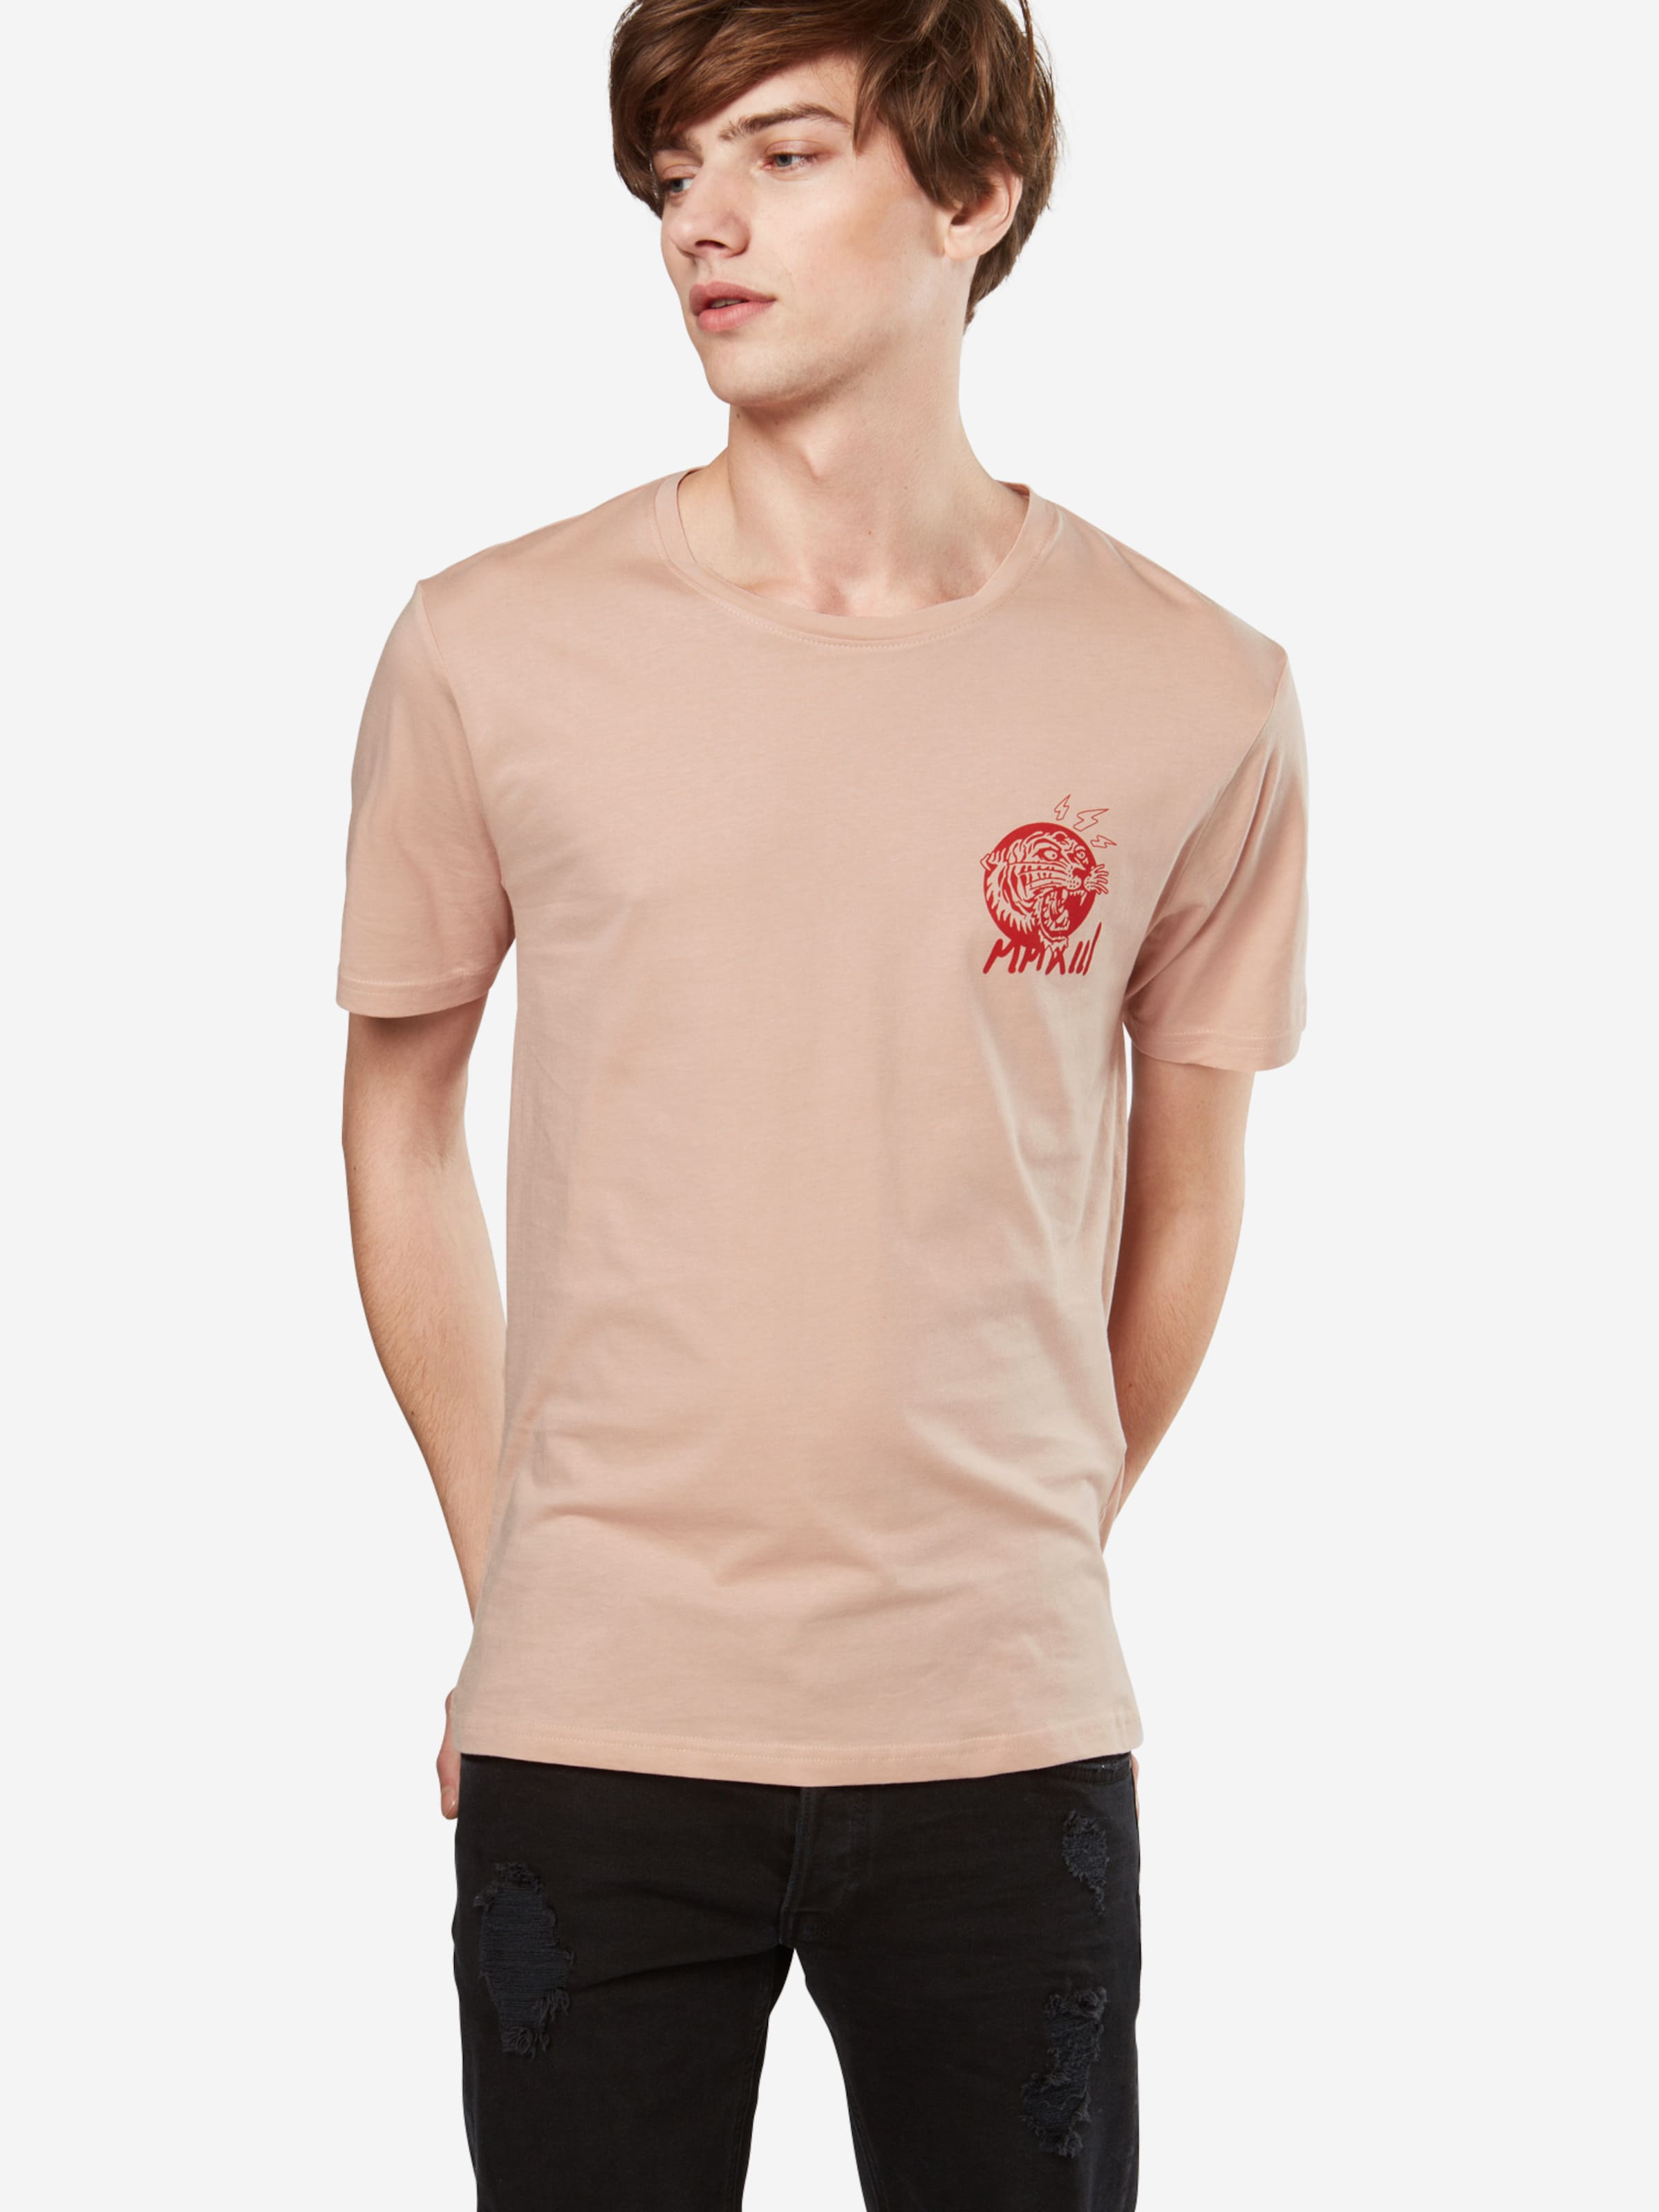 Only & Sons T-Shirt 'FIRE RED CHEST SS TEE EXP' Billig Verkauf Freies Verschiffen Billig Authentisch Spielraum 2018 JJ9QX7k93